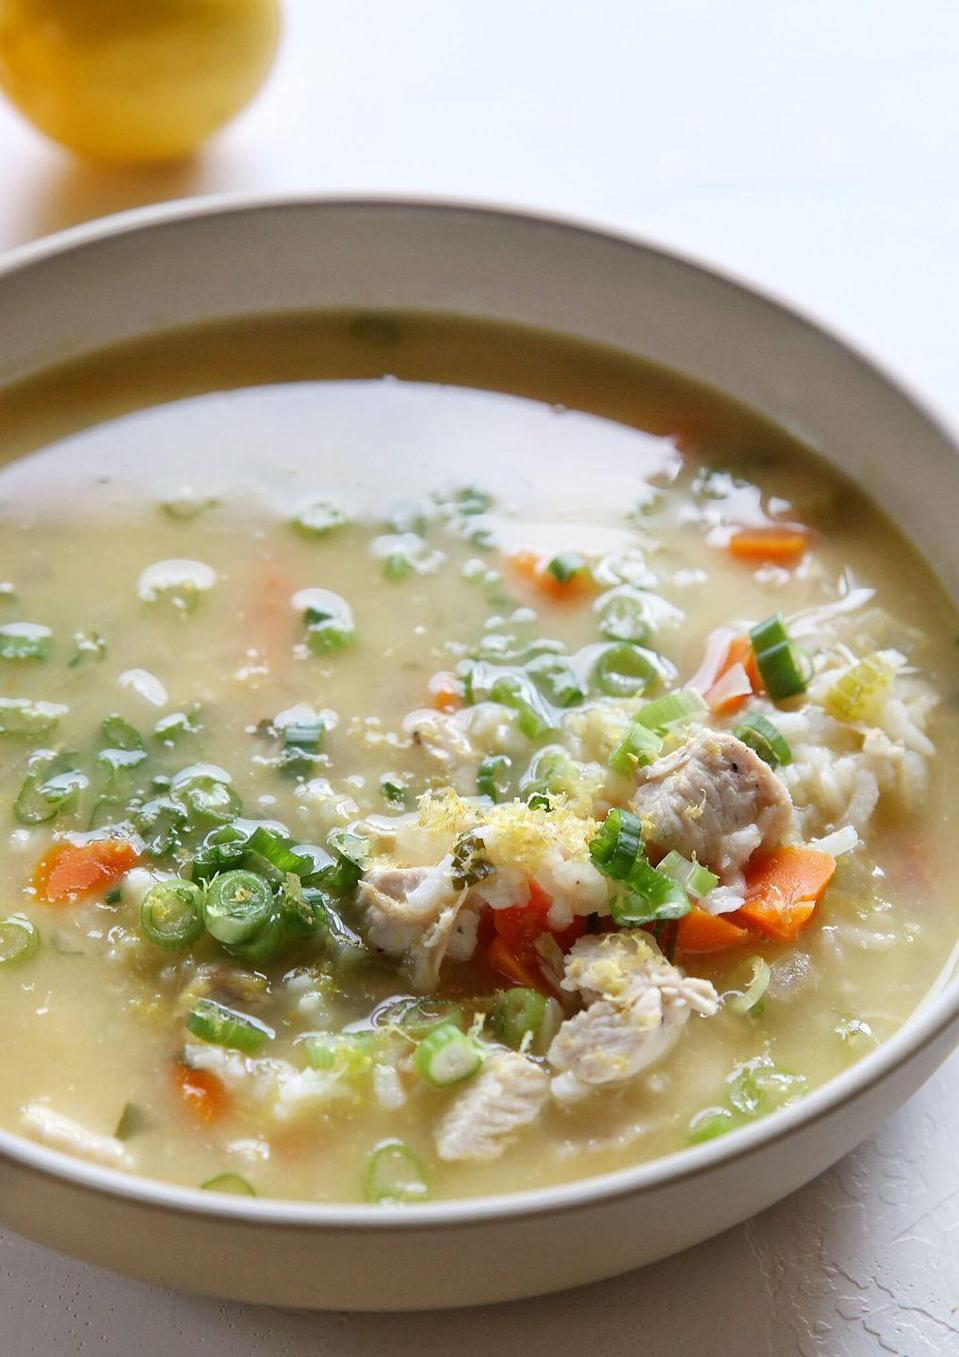 "<p>Spoiler: Chicken soup is way more comforting when it doesn't come out of a can.</p><p>Get the recipe from <a href=""https://www.delish.com/cooking/recipe-ideas/recipes/a50412/lemon-chicken-rice-soup-recipe/"" rel=""nofollow noopener"" target=""_blank"" data-ylk=""slk:Delish"" class=""link rapid-noclick-resp"">Delish</a>.</p>"